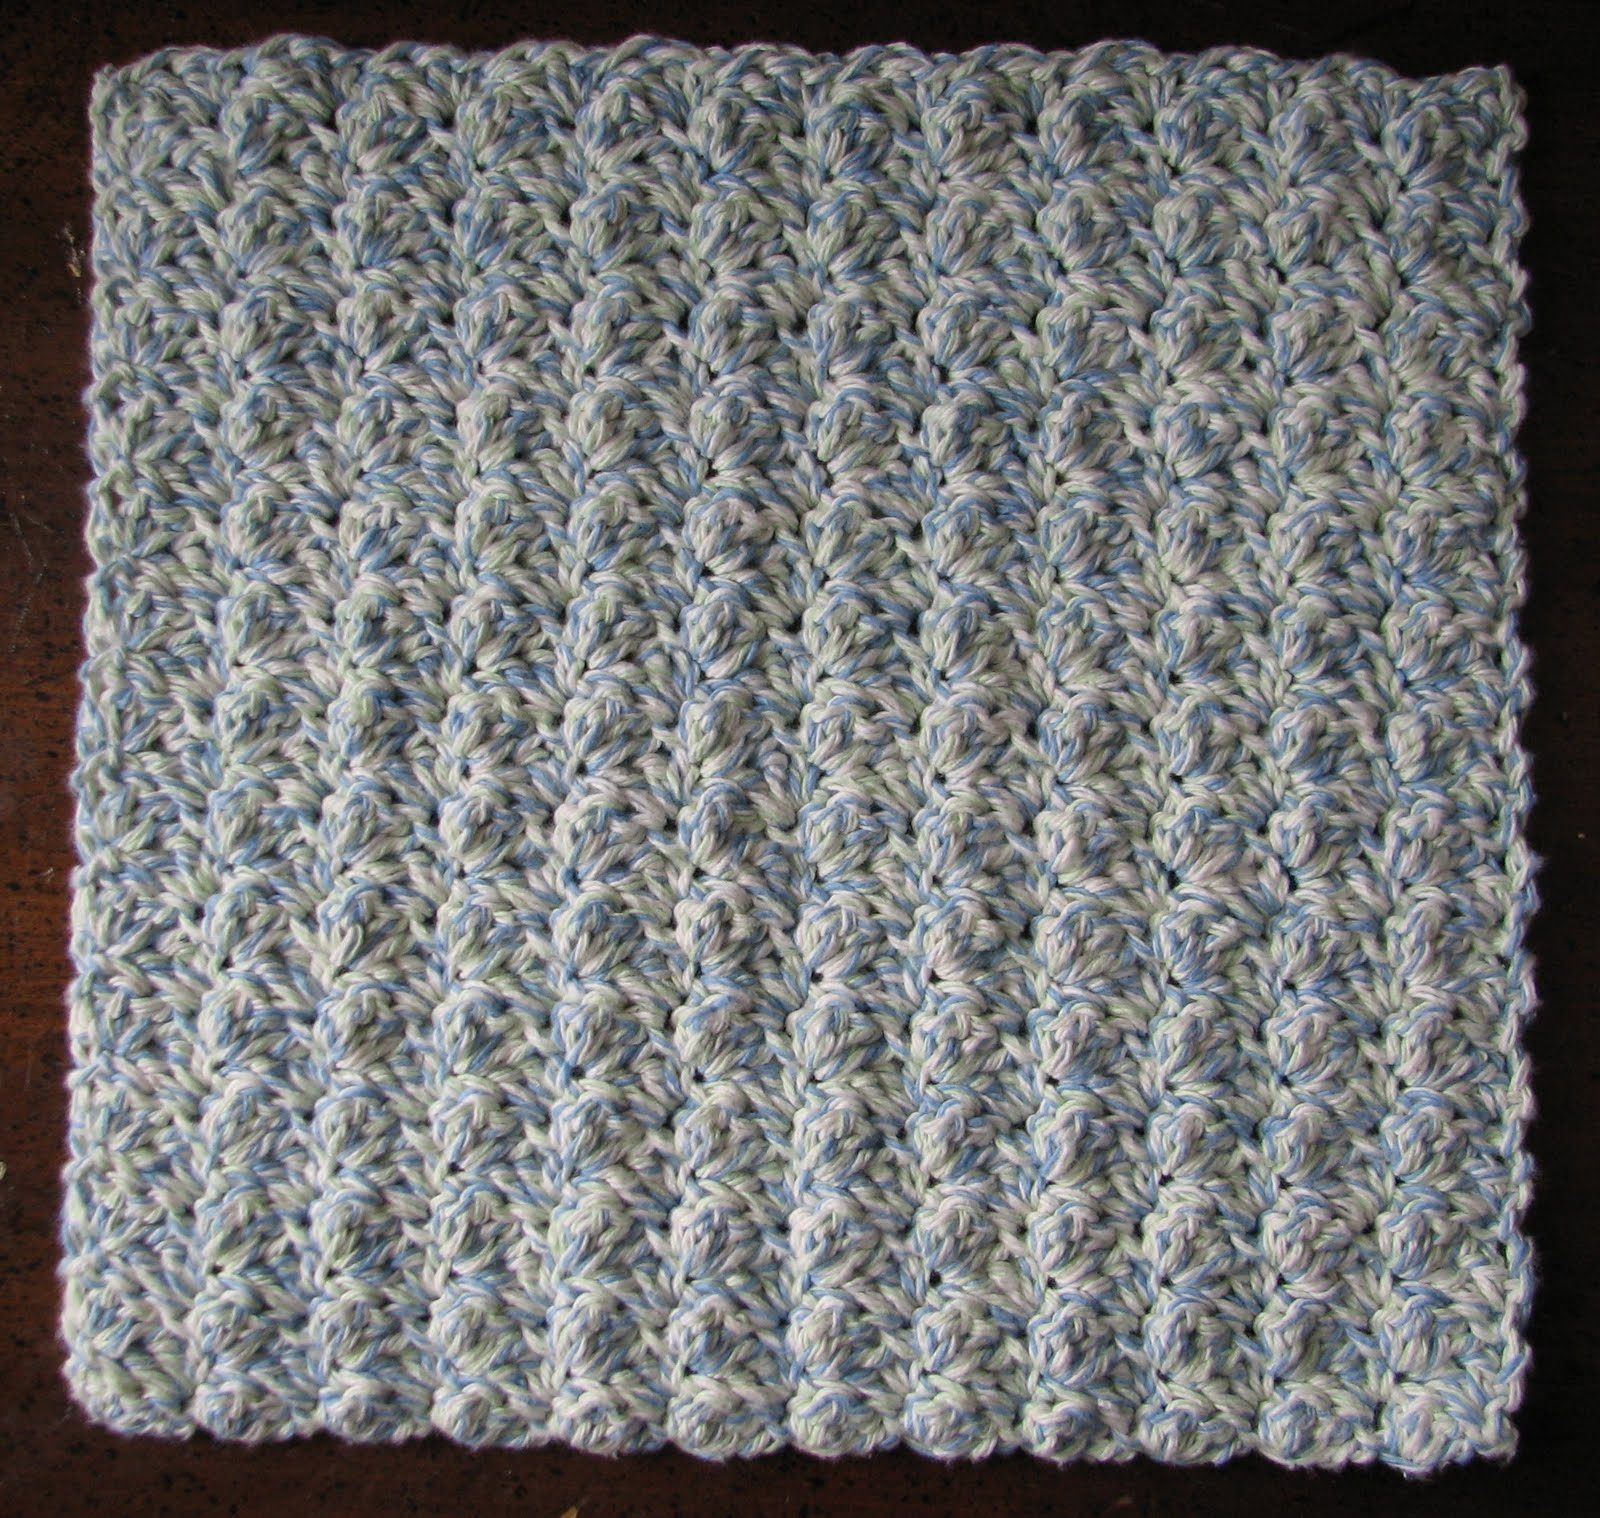 Crochet Ripple Pattern : Ripple Crochet Pattern Related Keywords & Suggestions - Ripple Crochet ...